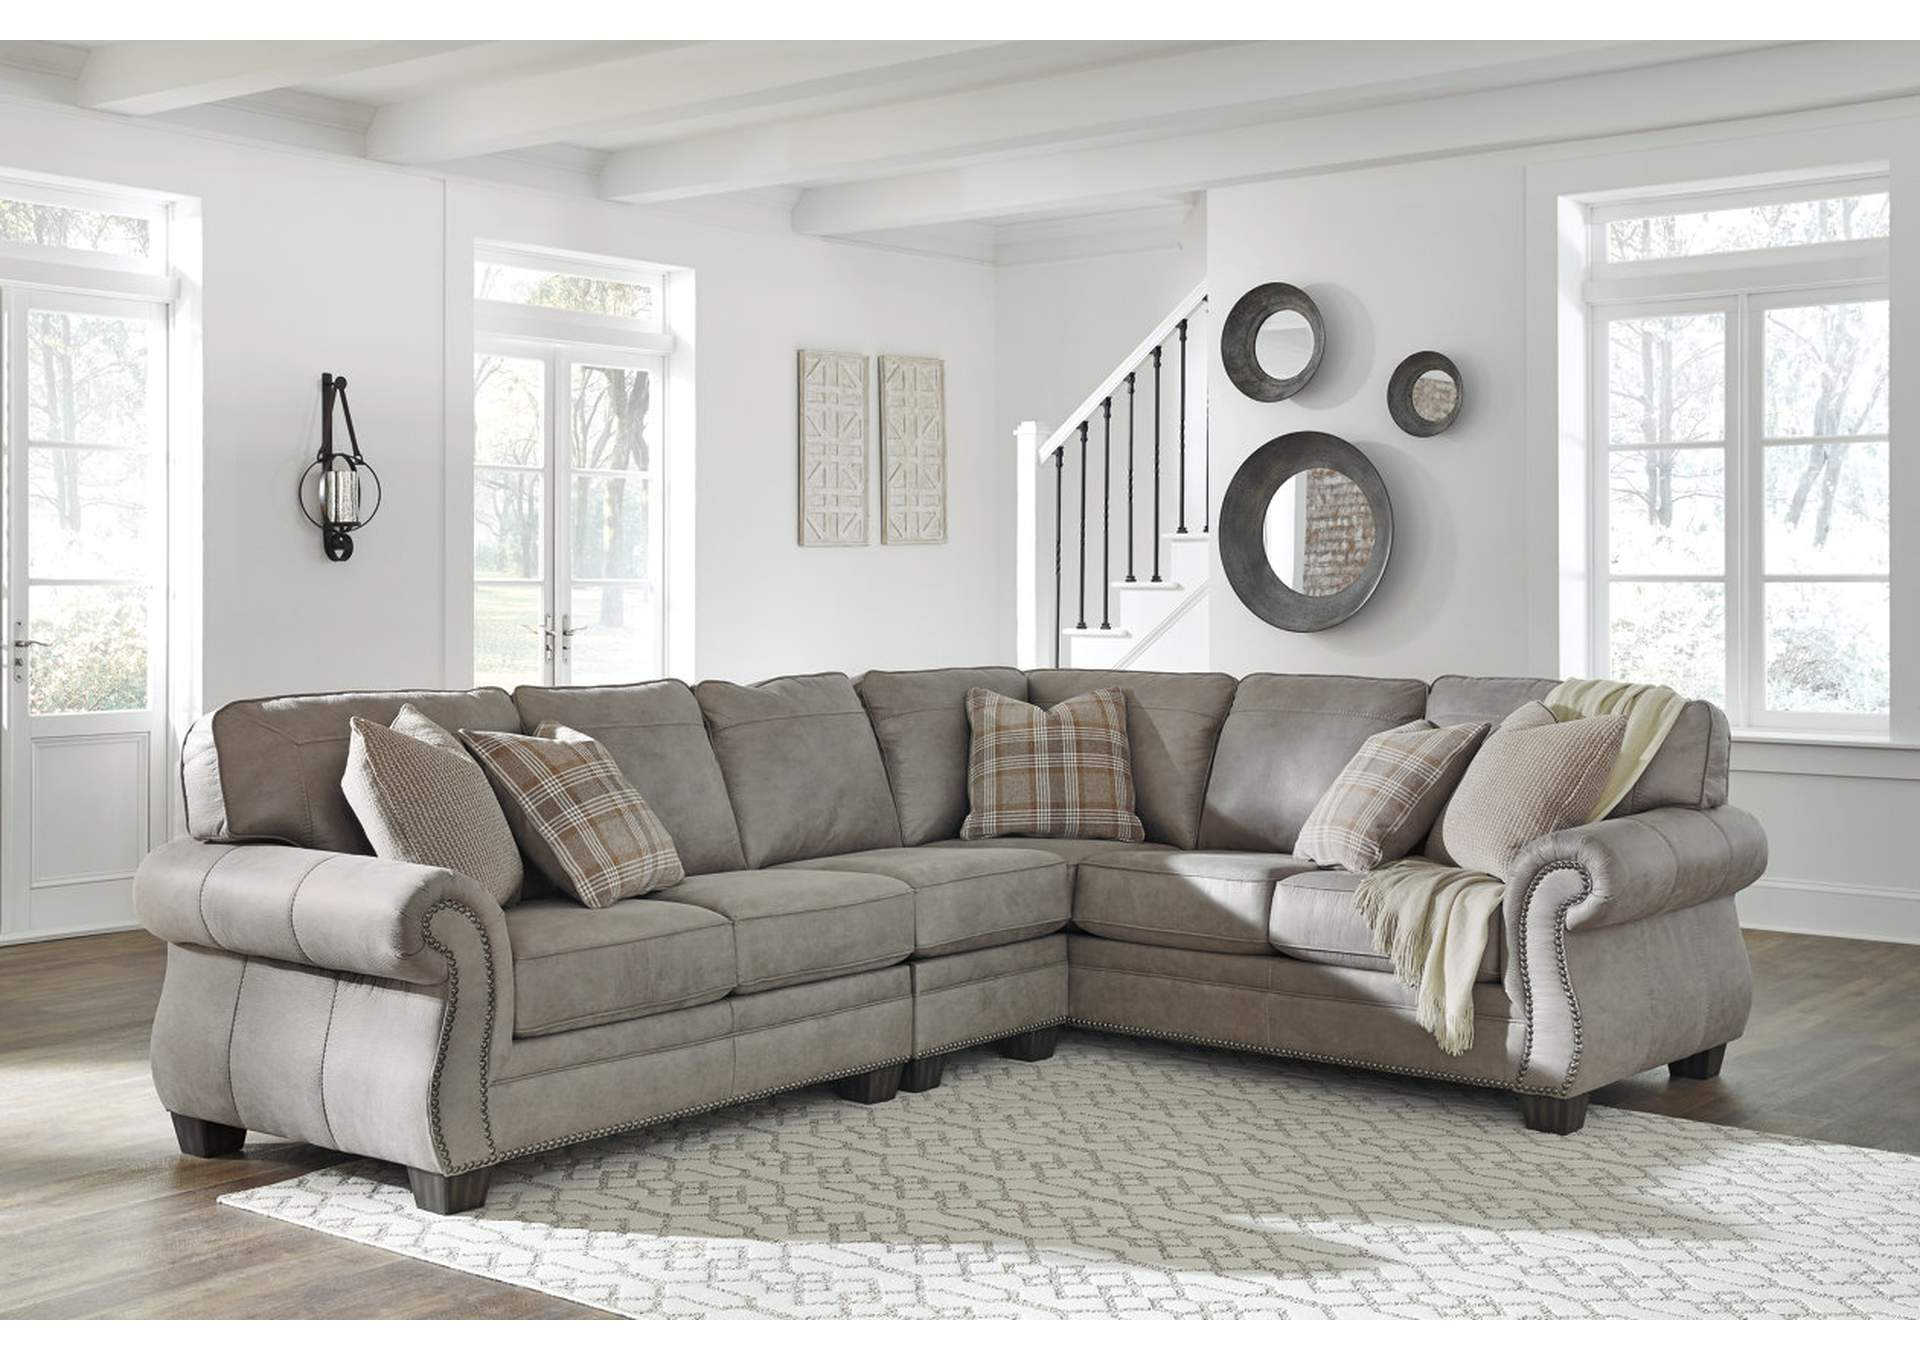 Olsberg Steel LAF Sectional,Signature Design By Ashley